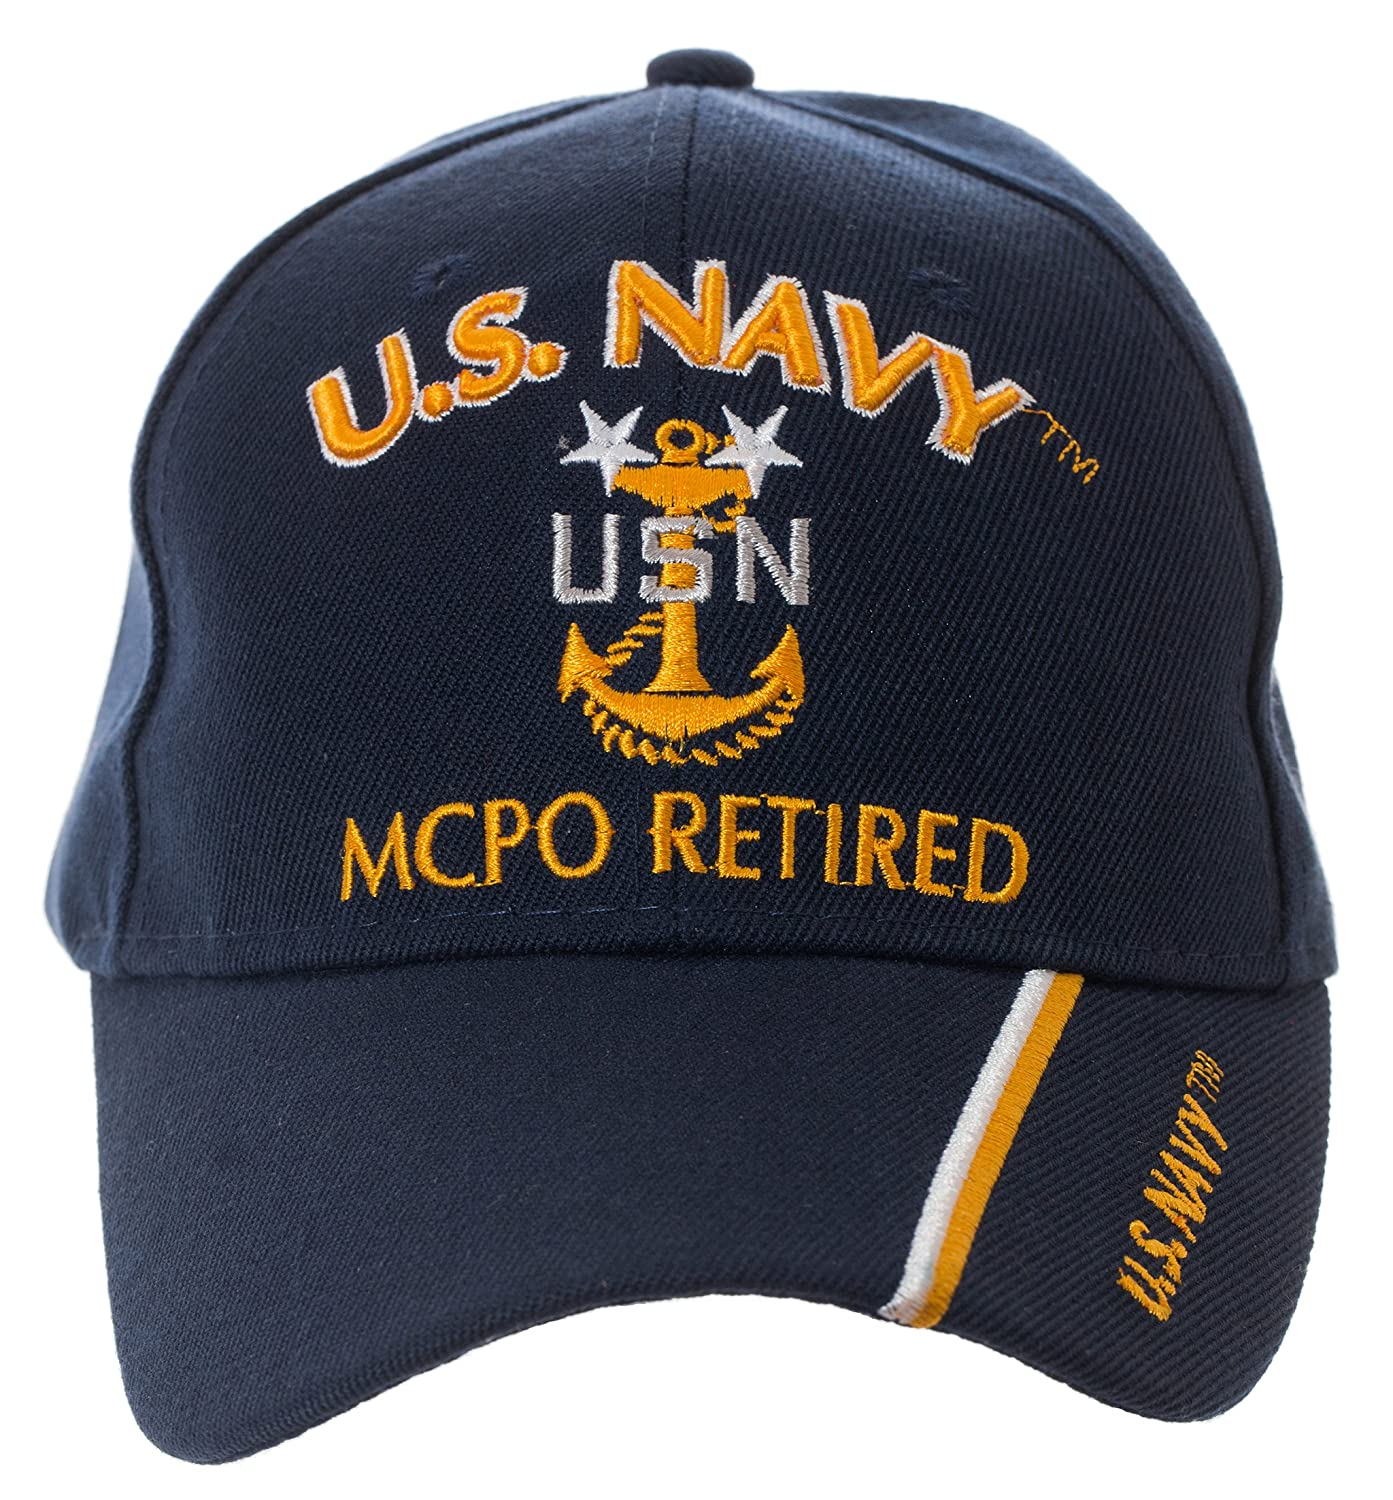 Artisan Owl Officially Licensed US Navy Retired Baseball Cap - Multiple  Ranks! (Chief Petty Officer) at Amazon Men s Clothing store  36ee9160805a